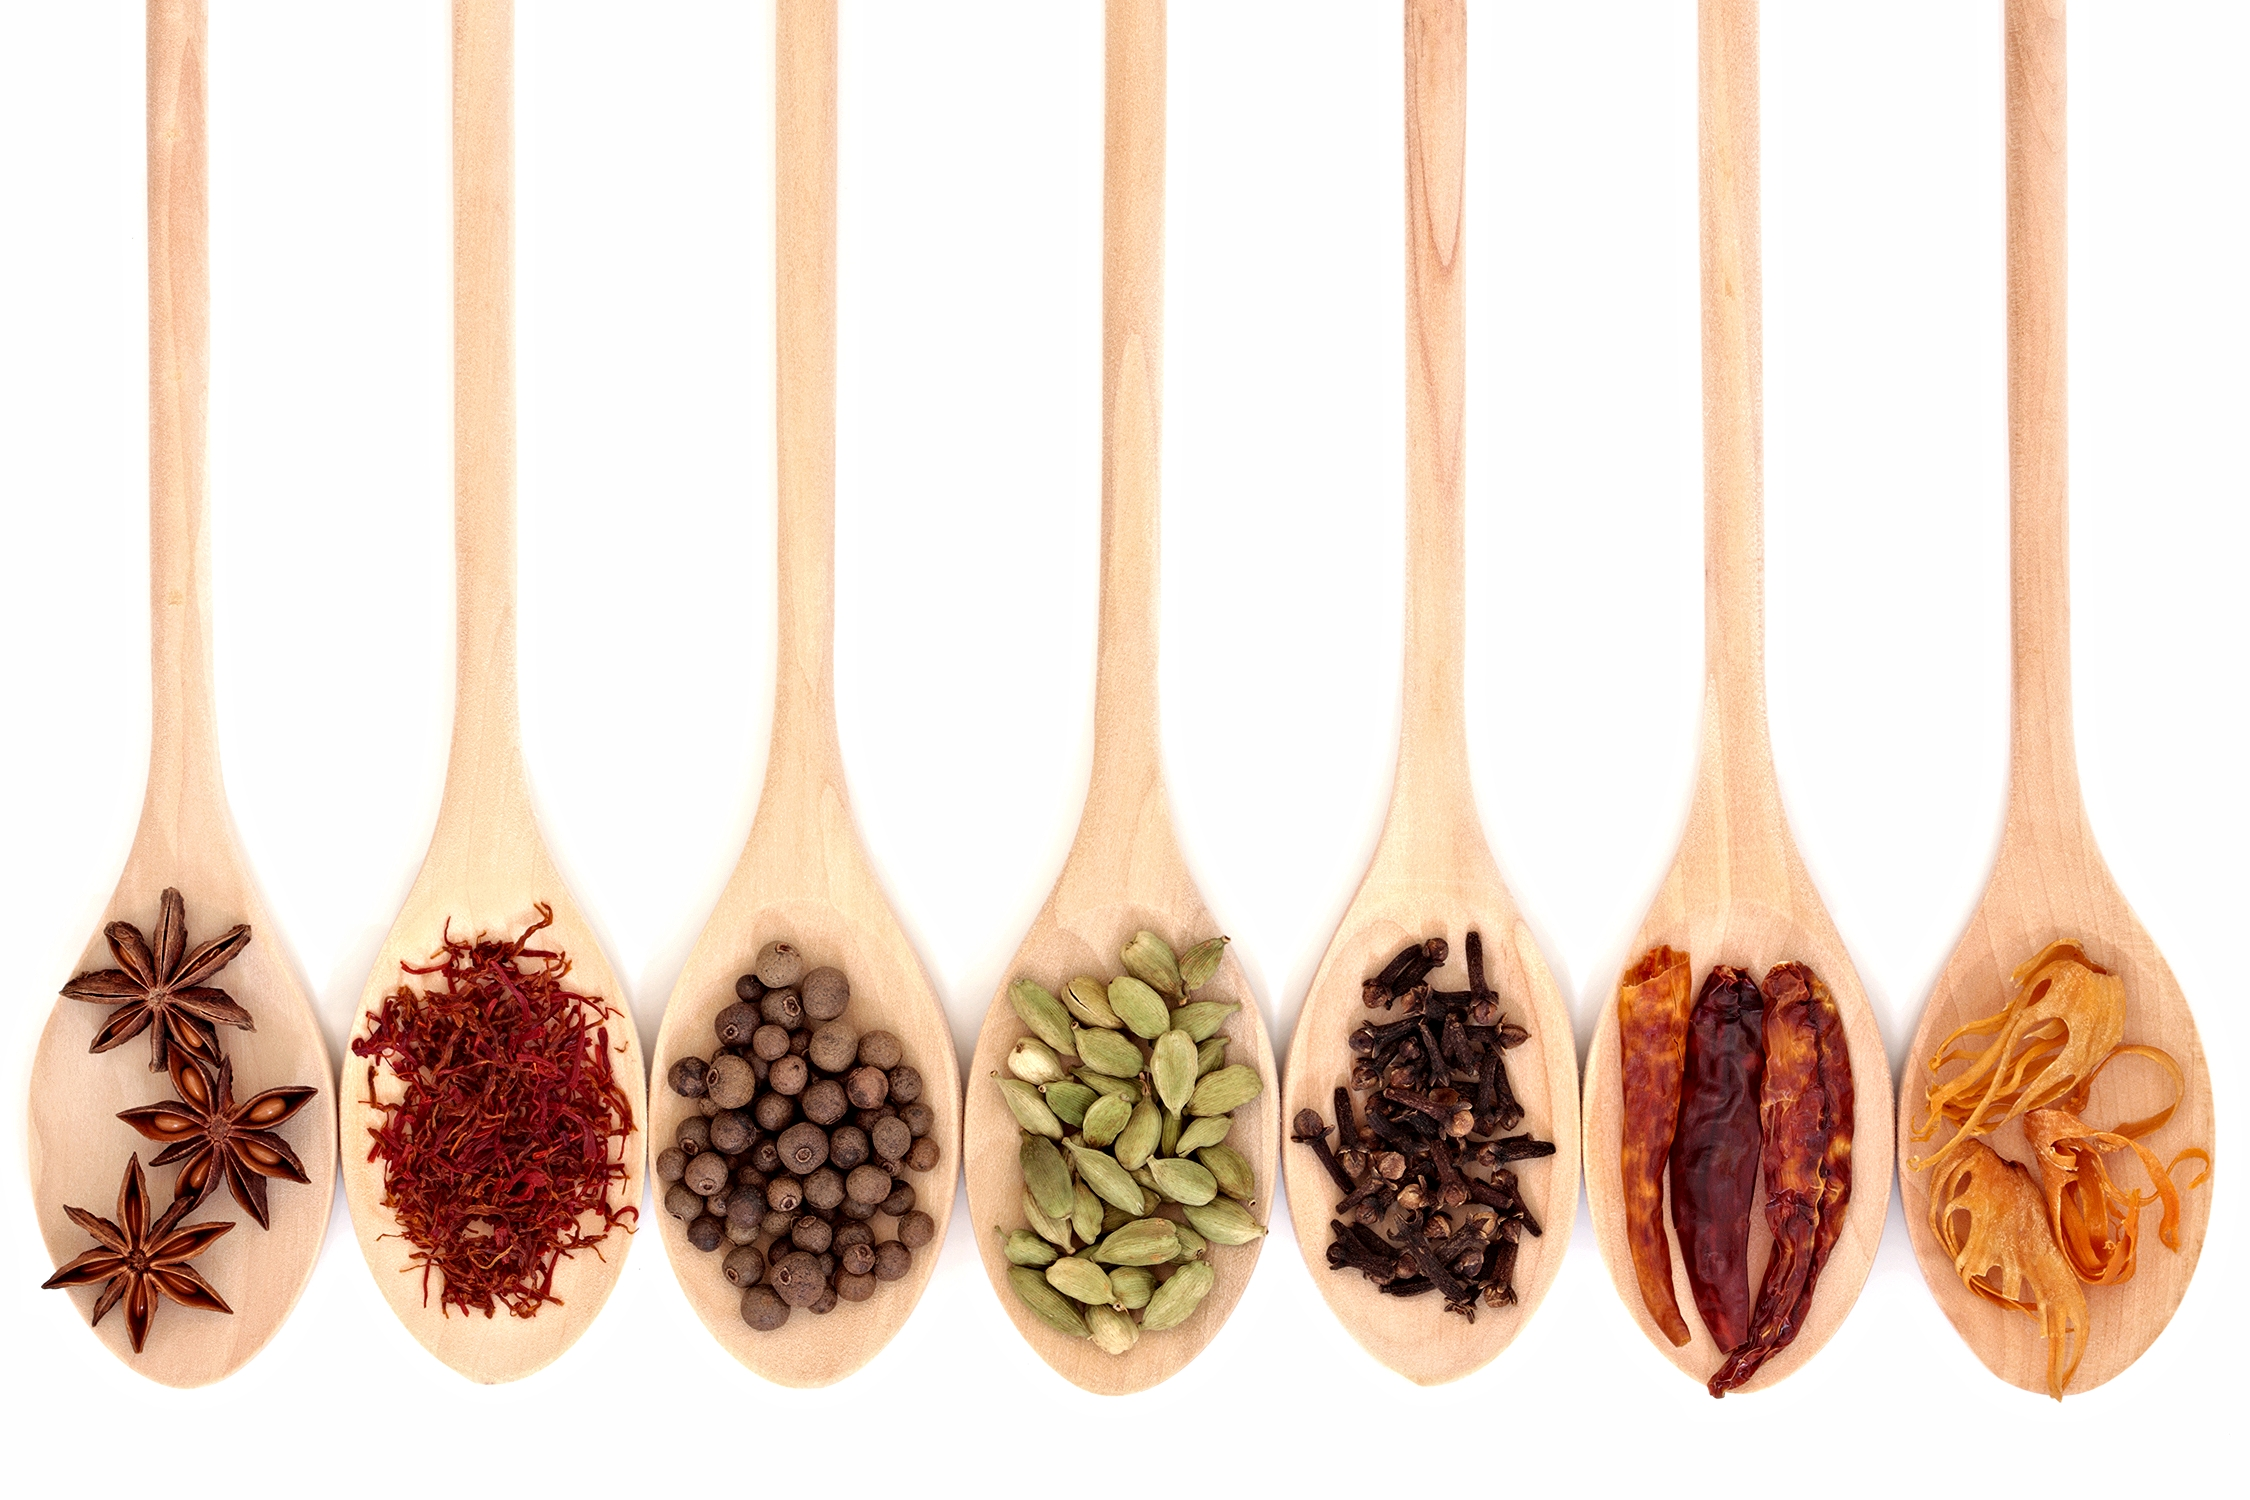 Certified organic, non-GMO spices, seeds and herbs